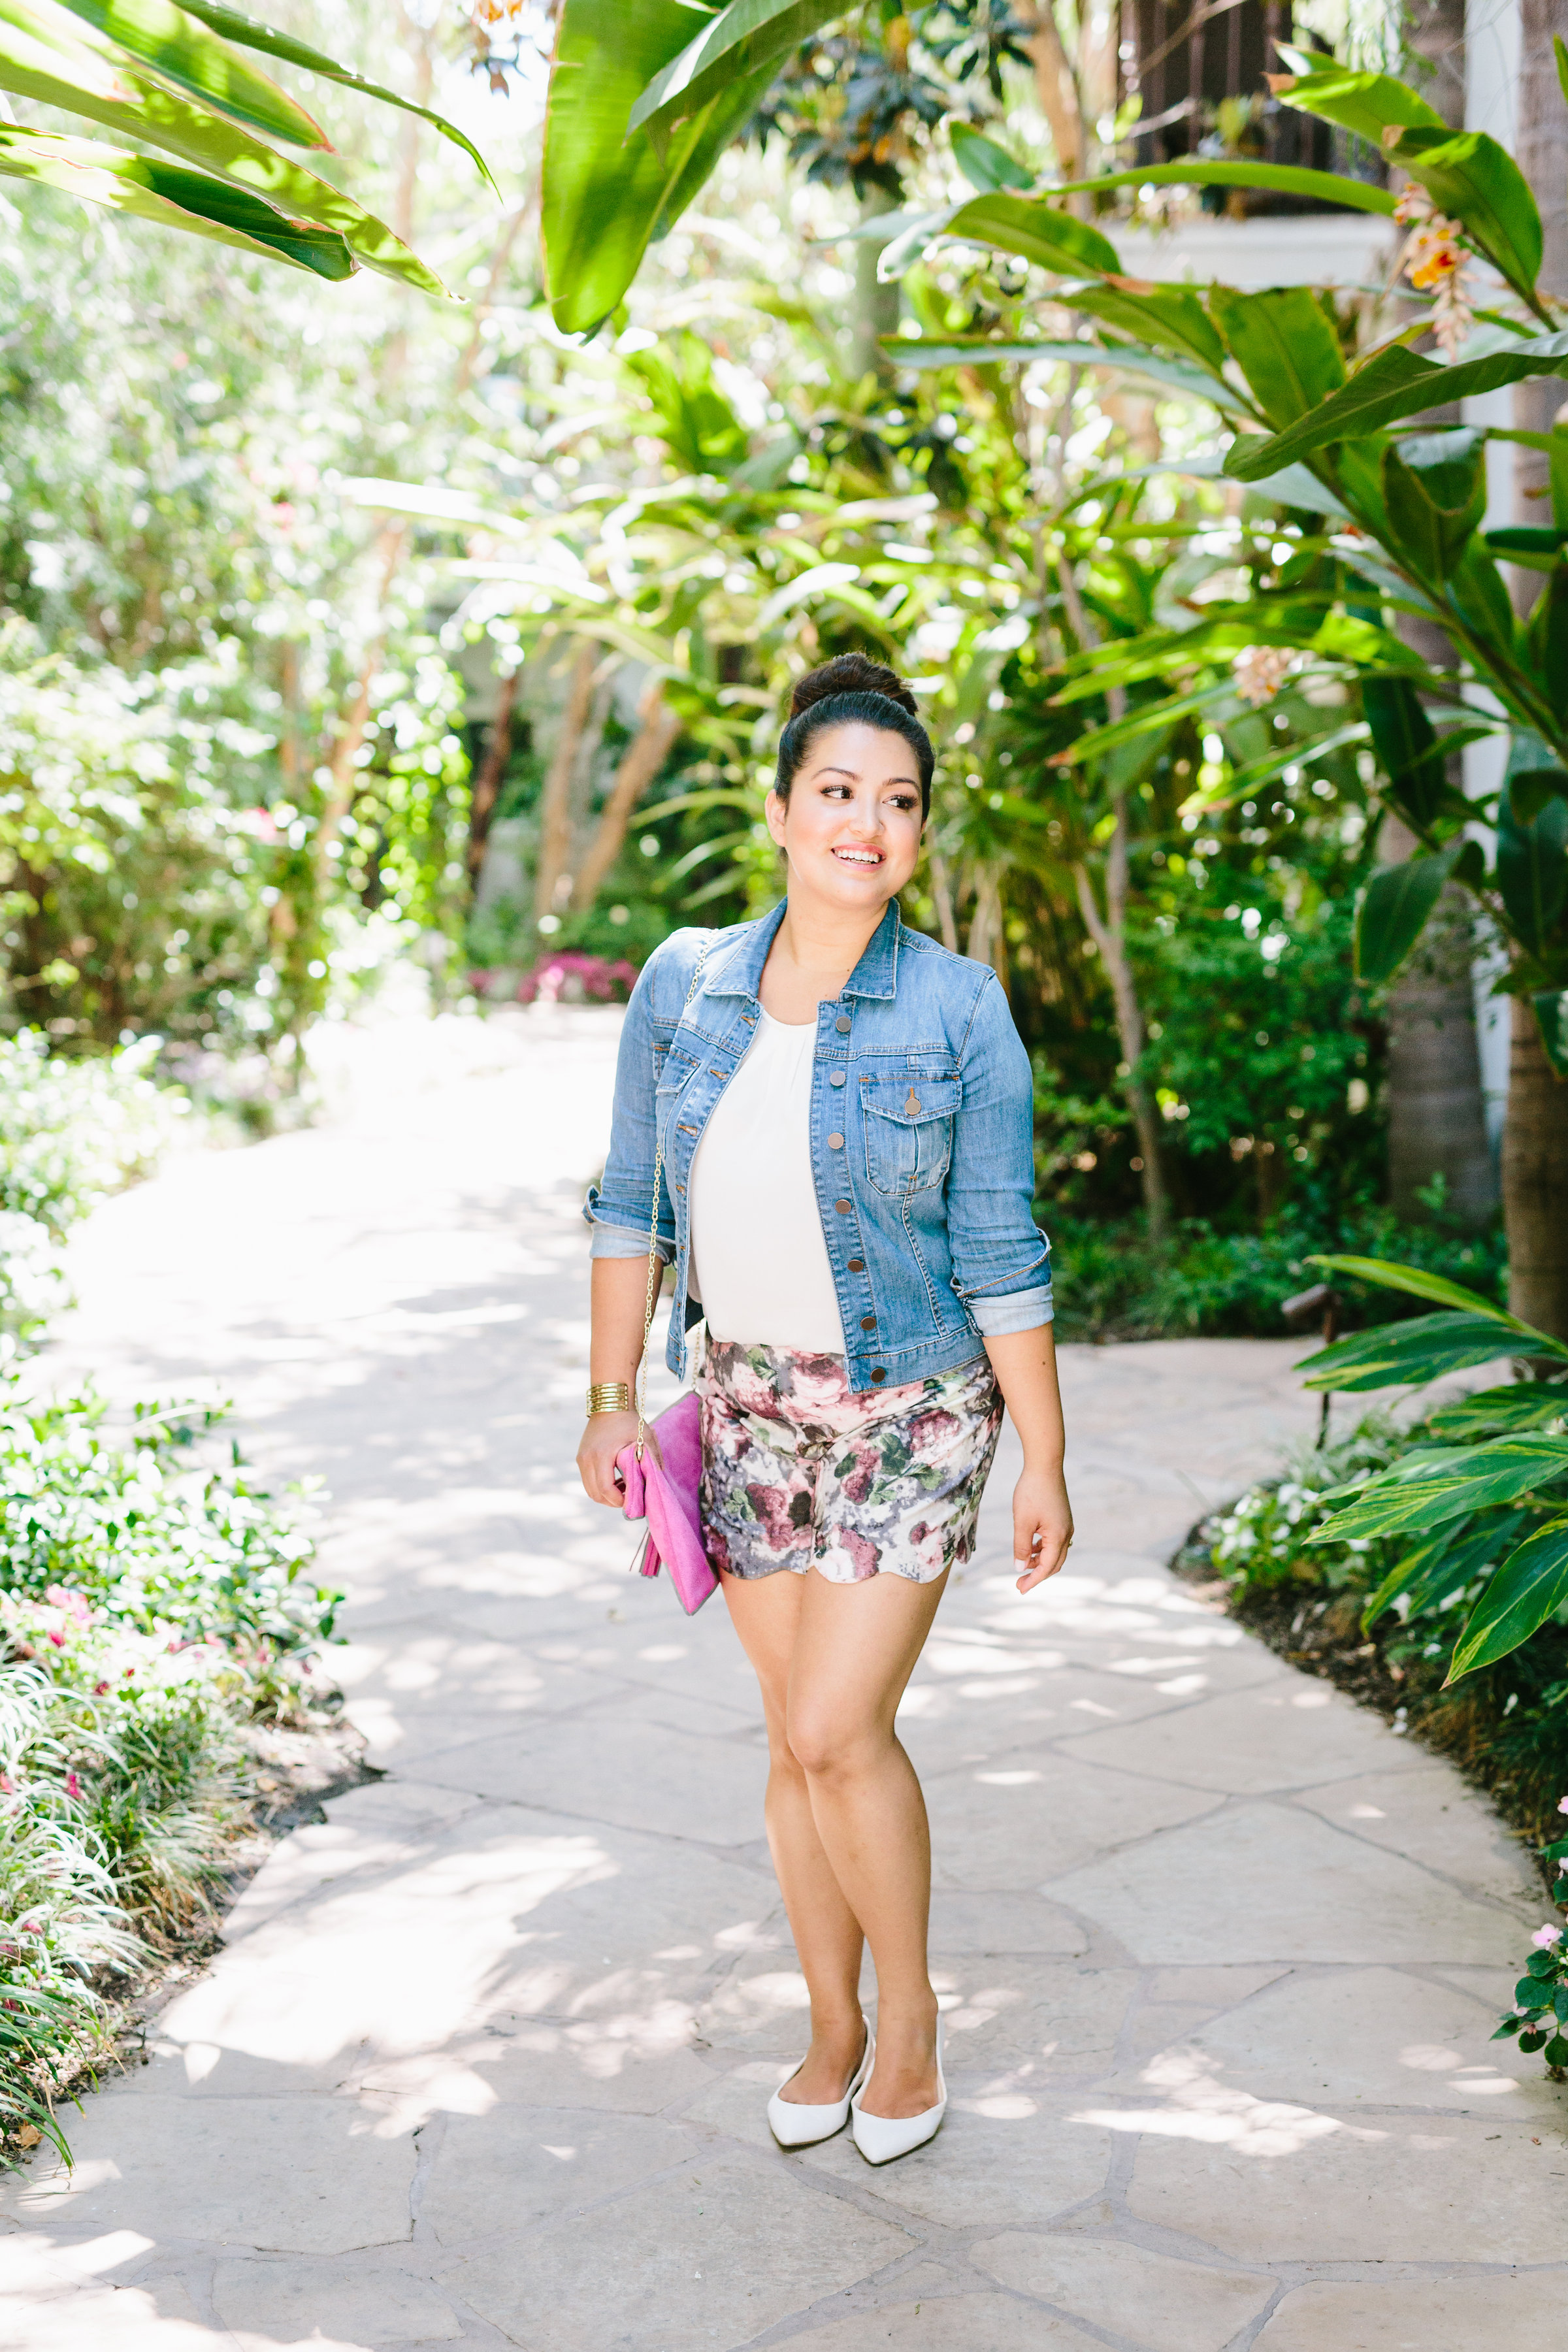 I Was On TV: Stitch Fix July Review + Giveaway